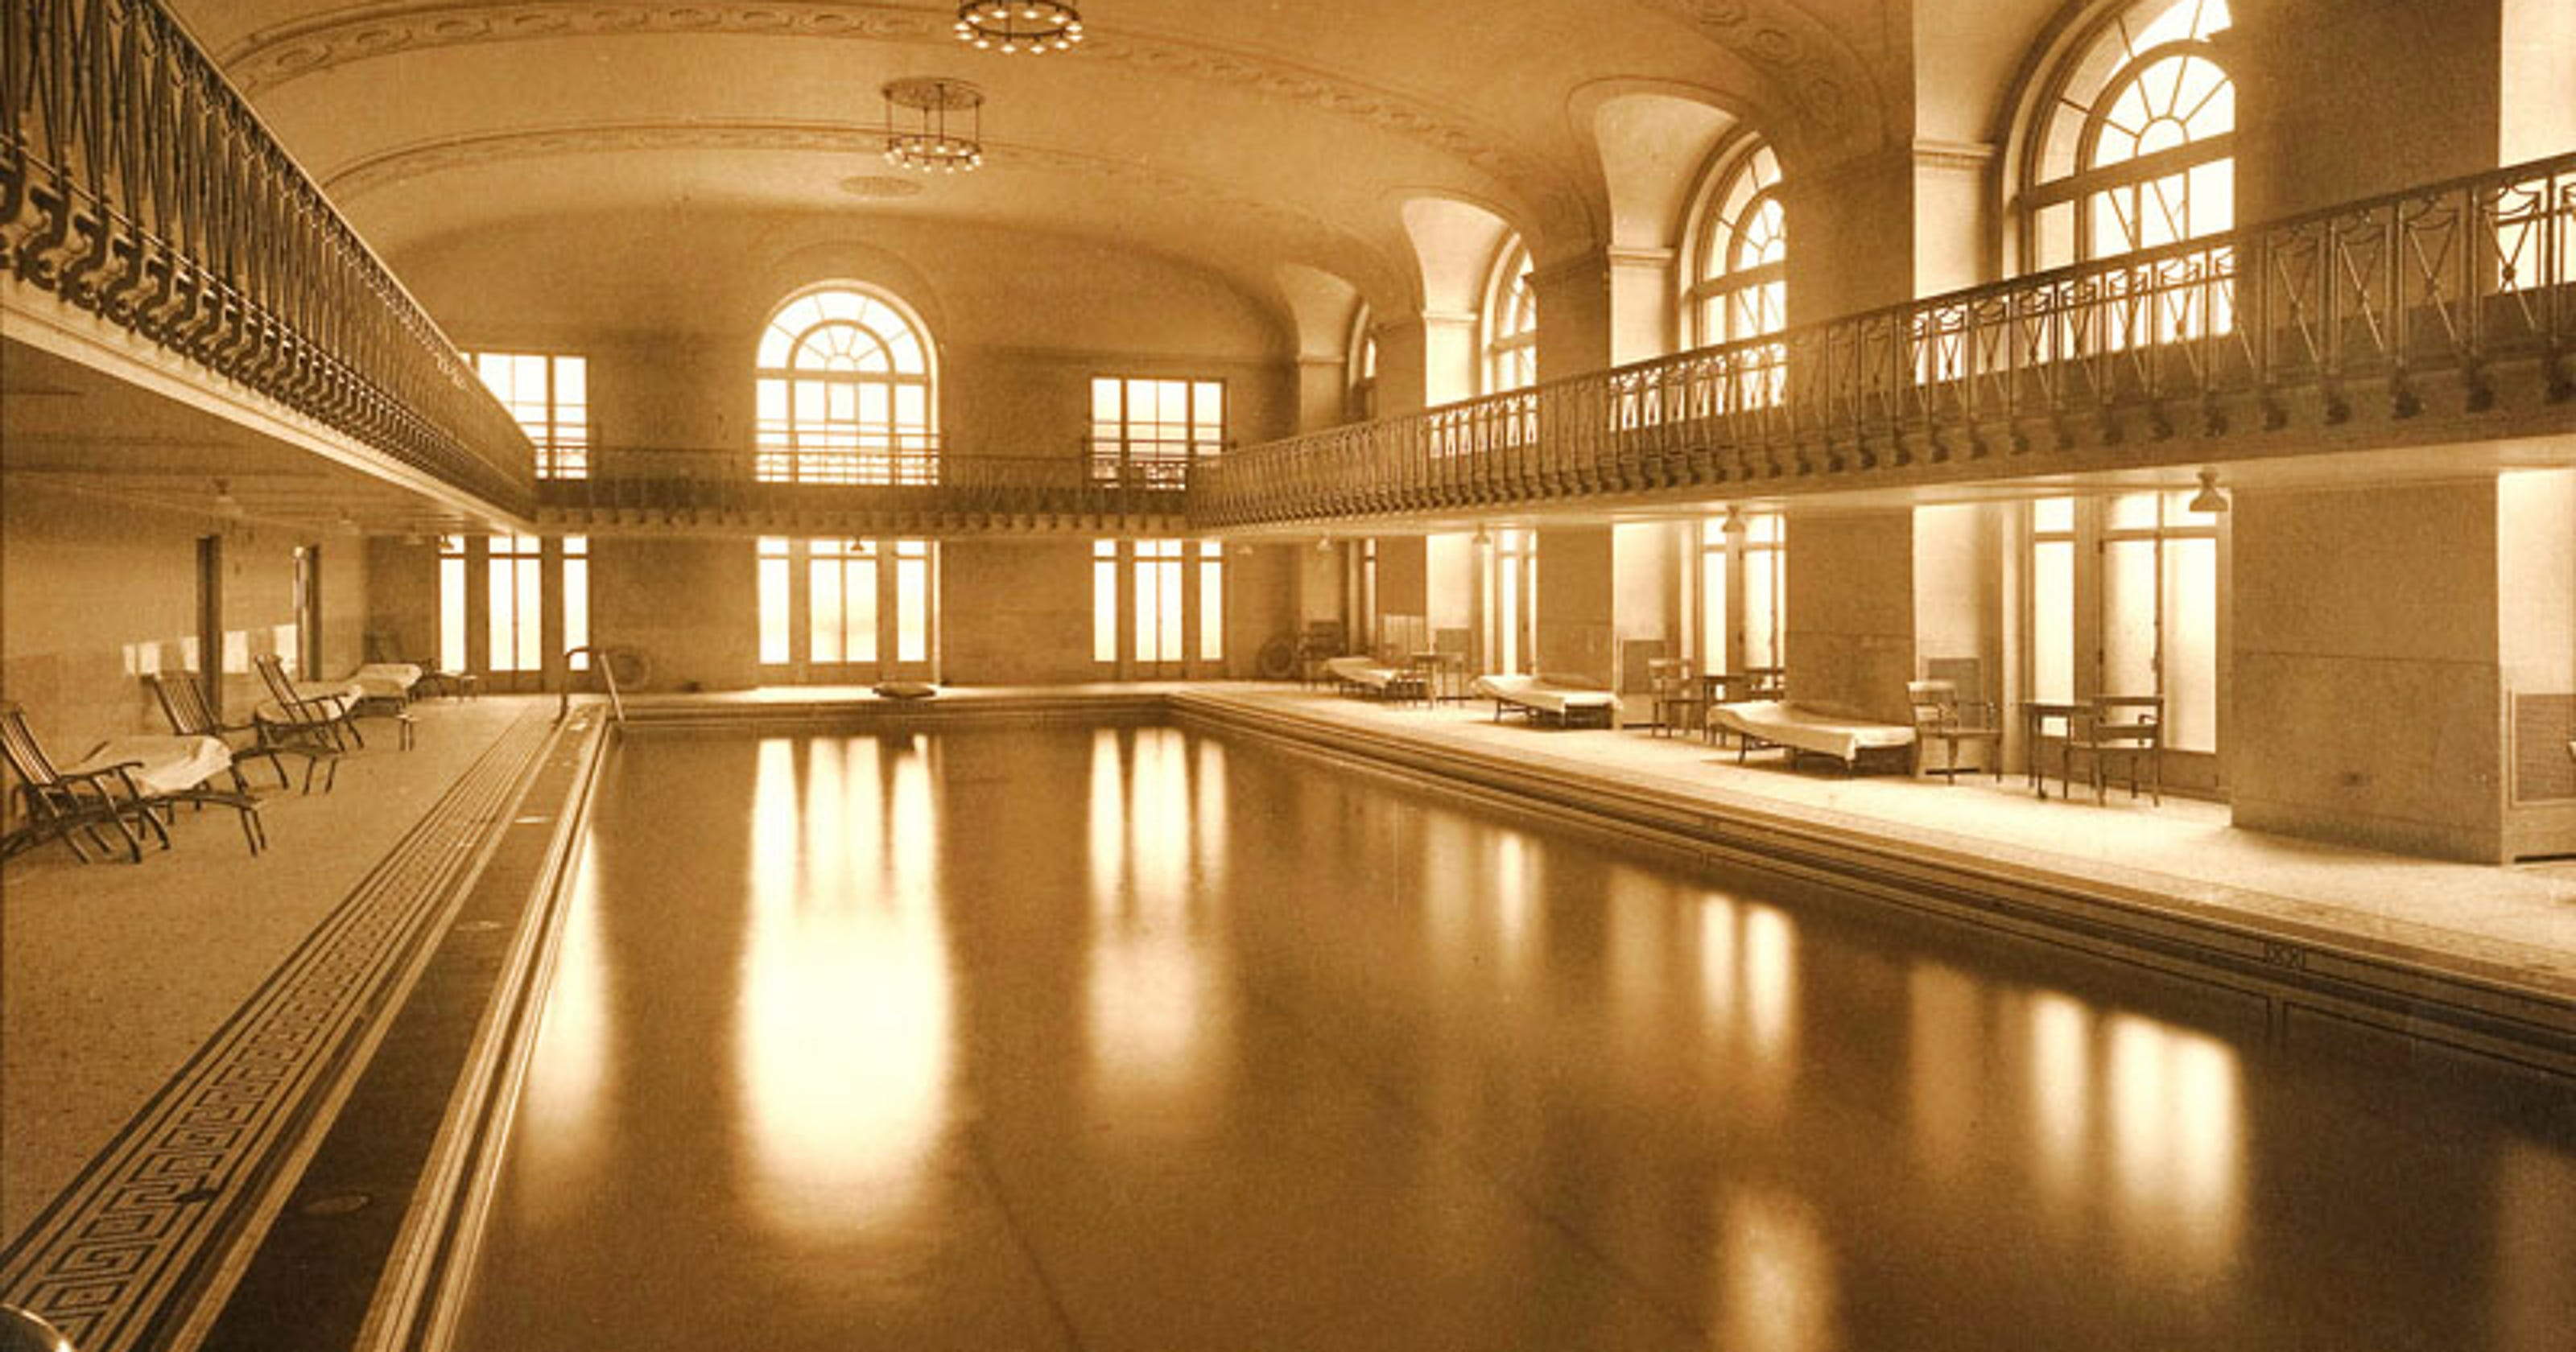 Meet detroit 39 s 39 prewar 39 indoor swimming pools - Public indoor swimming pools el paso tx ...